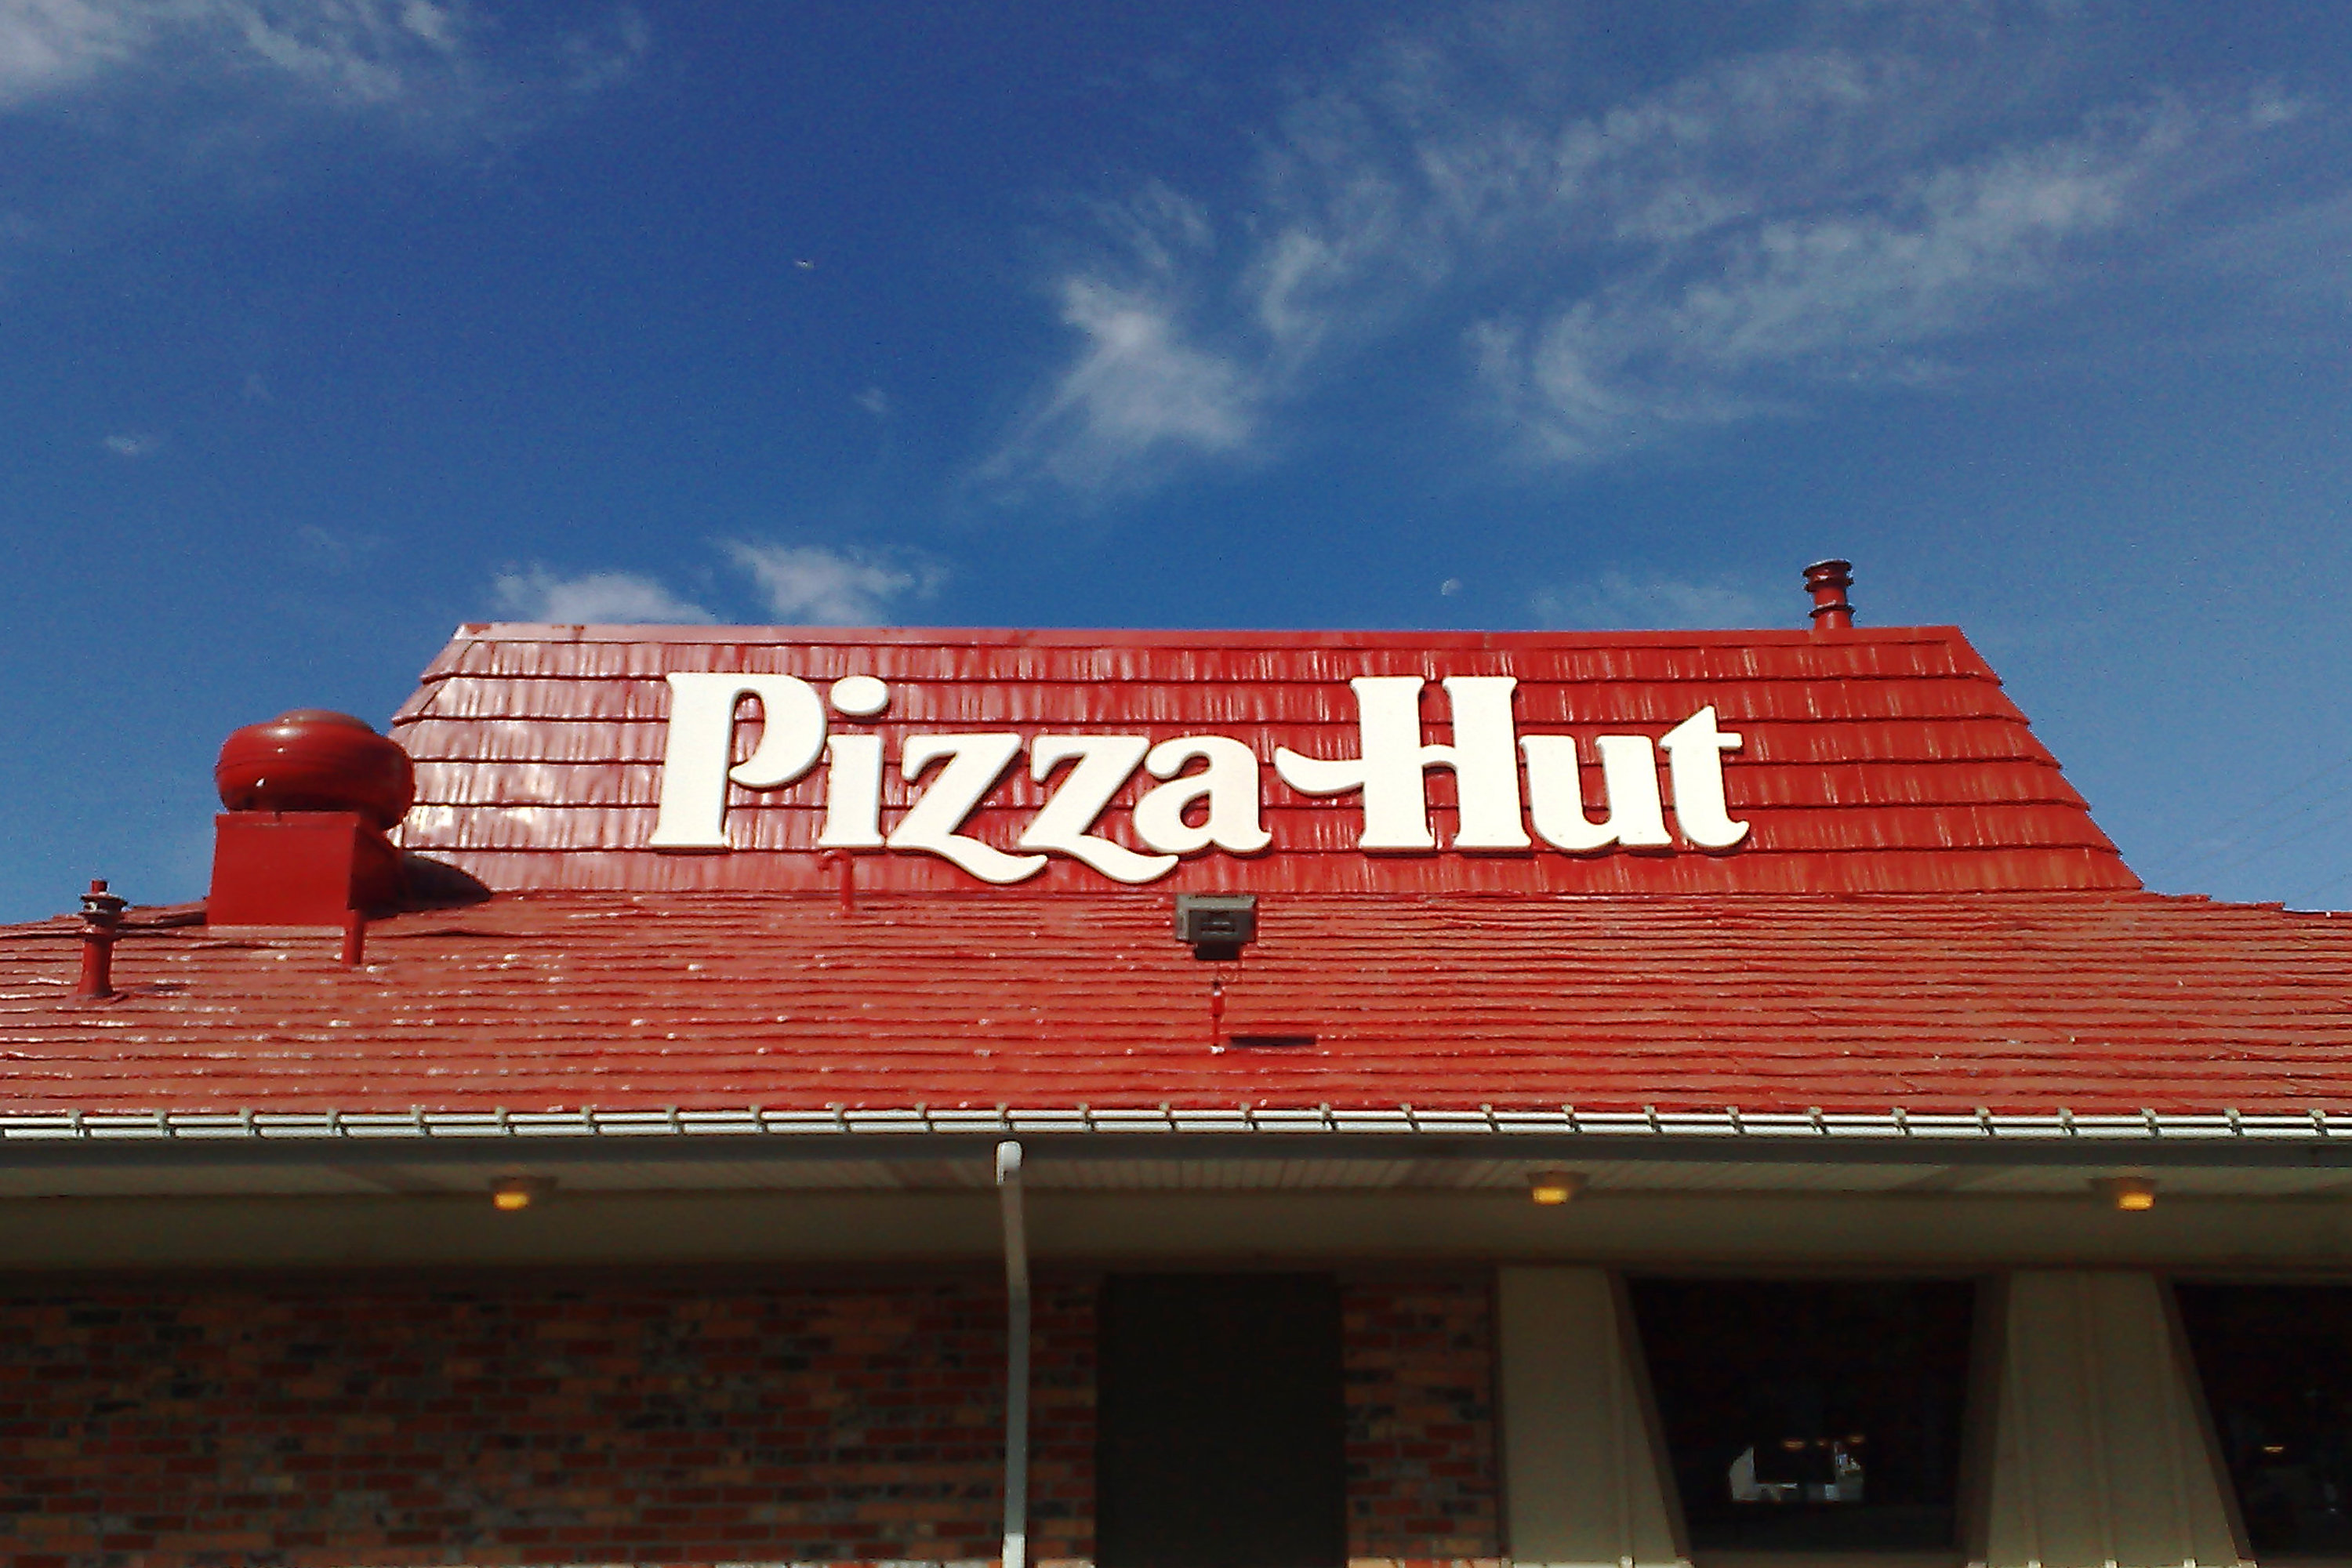 America, Pizza Hut, and Me